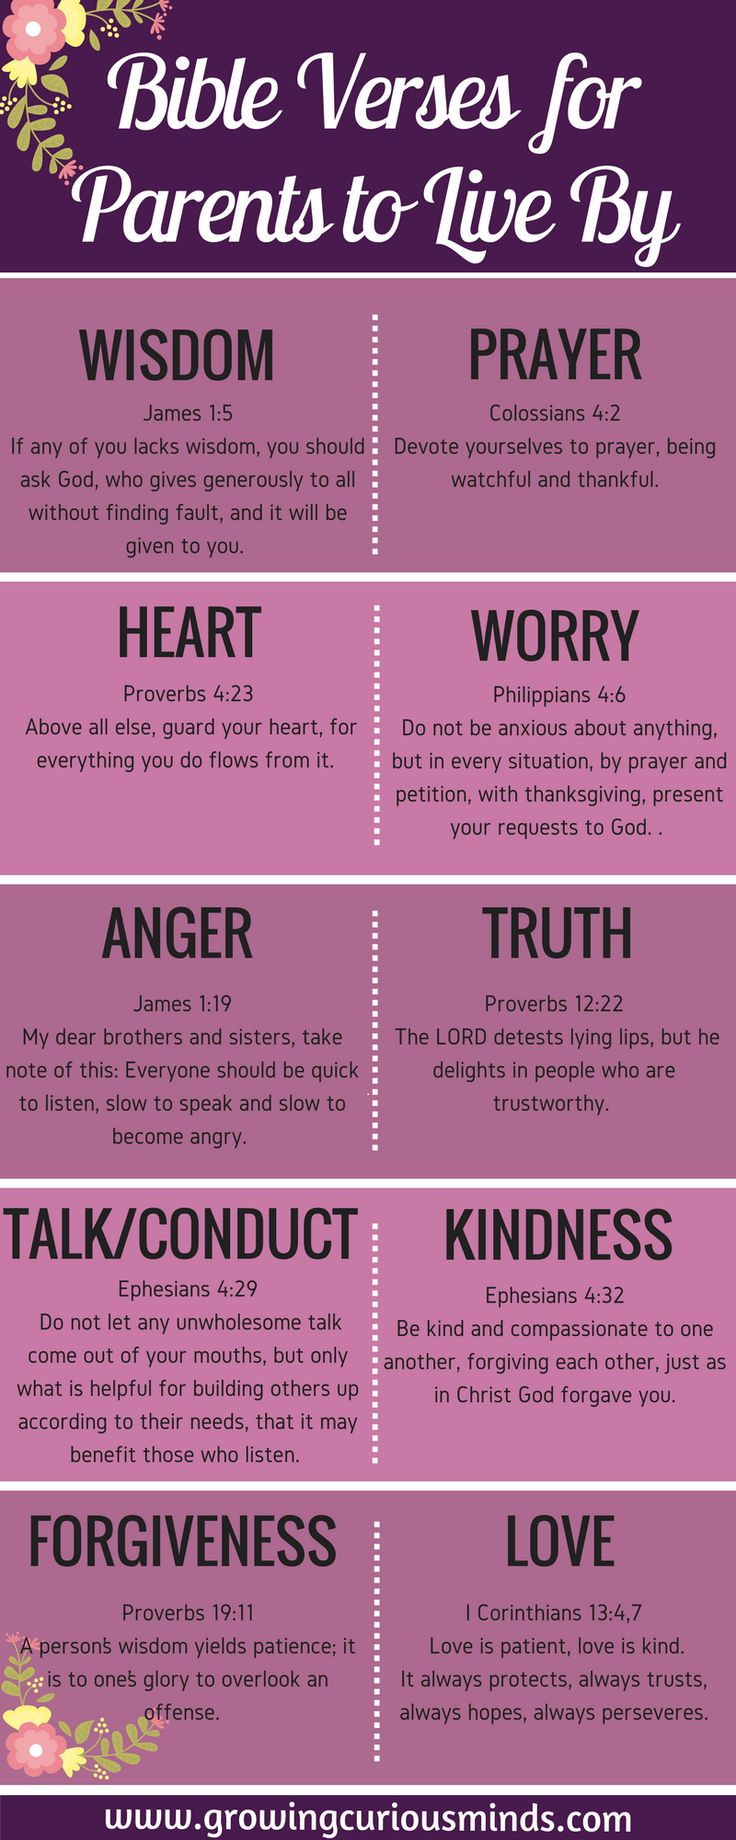 Parents are the children's' first teachers. We want to raise our children to have great character and morals. Here are 10 topics and Bible verses for parents to live by so we can the best role models to them. #bibleversesforparents #bible #parents via @growingcuriousminds